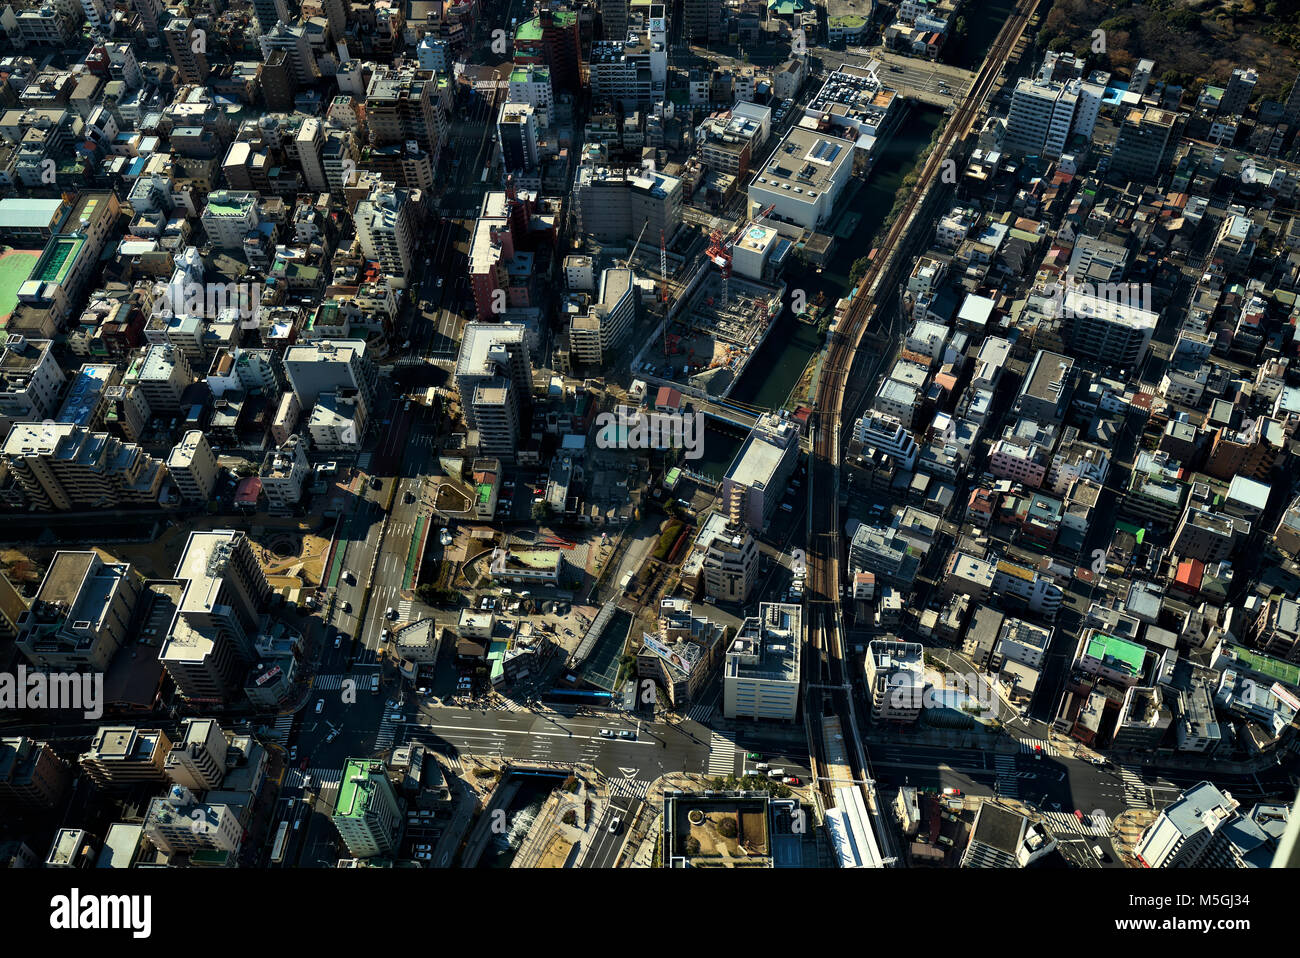 Tokyo megalopolis from above, Skytree, Tokyo, Japan Stock Photo